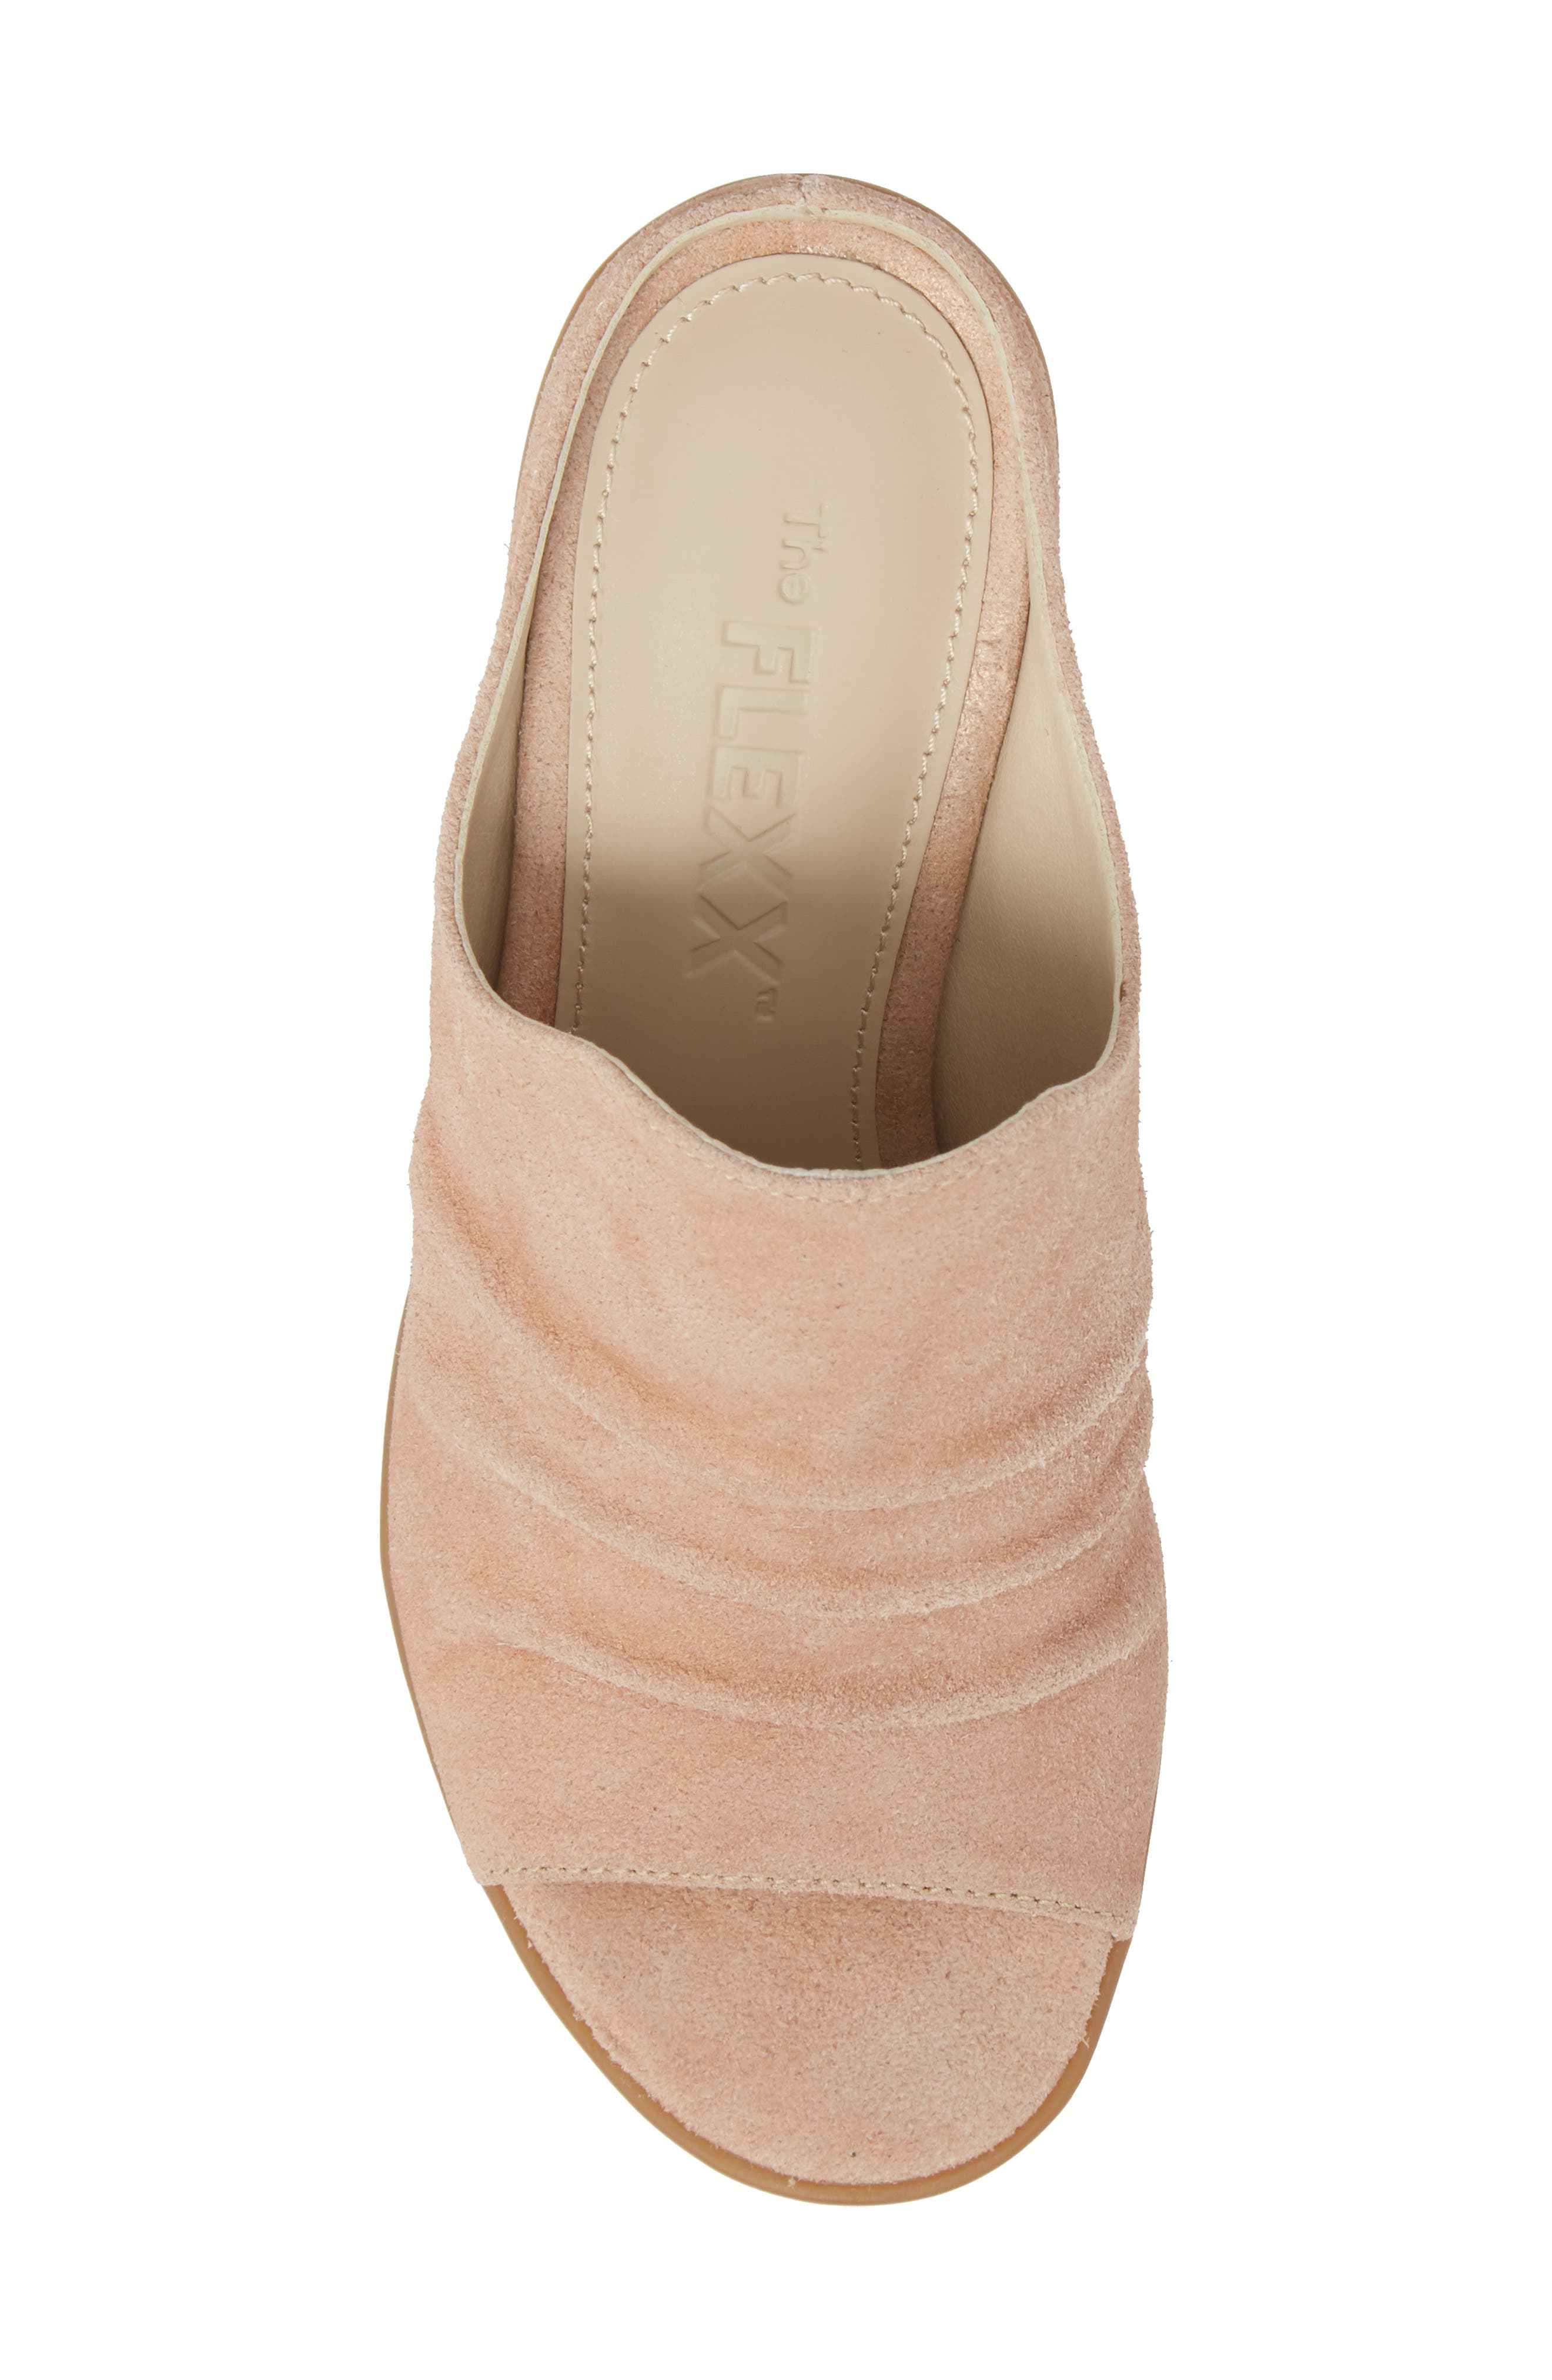 Aim to Pleat Mule,                             Alternate thumbnail 5, color,                             Rose Gold Leather